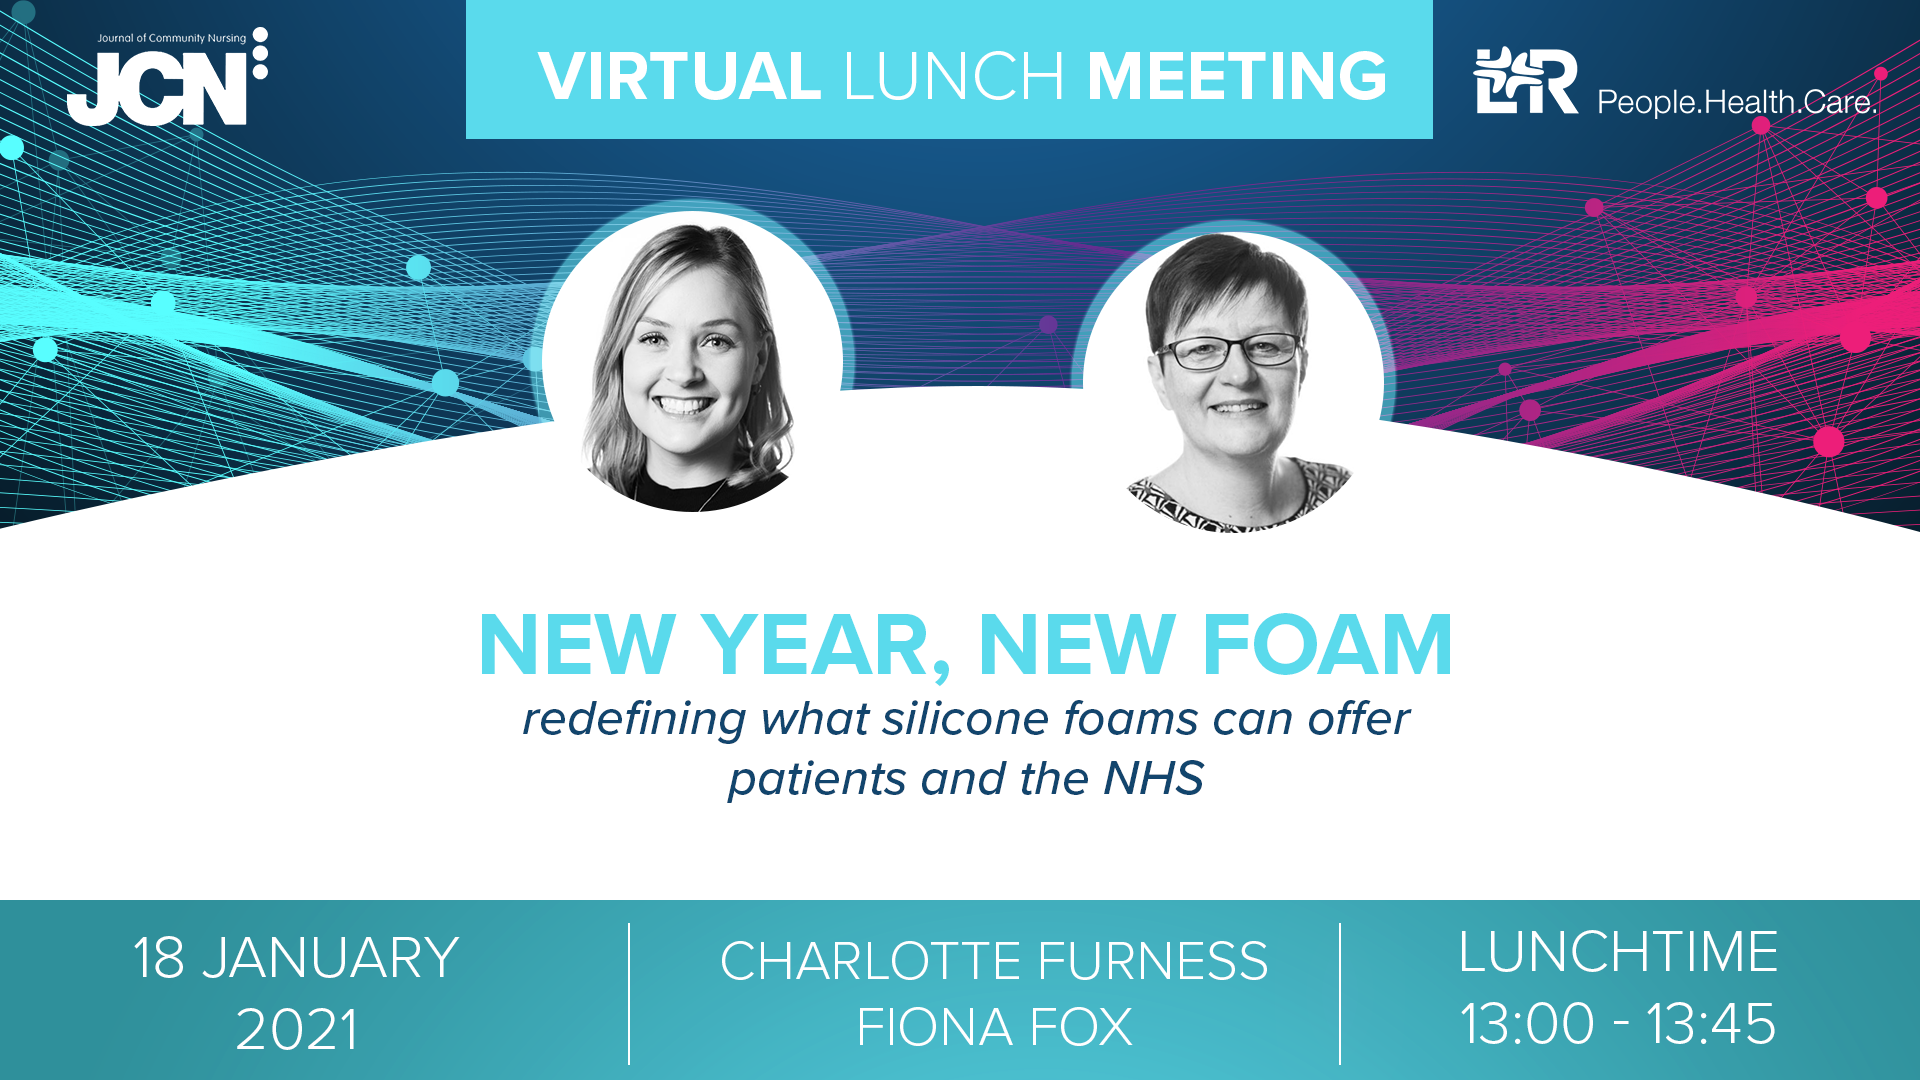 Virtual Lunch Meeting: New Year, New Foam - redefining what silicone foams can offer patients and the NHS